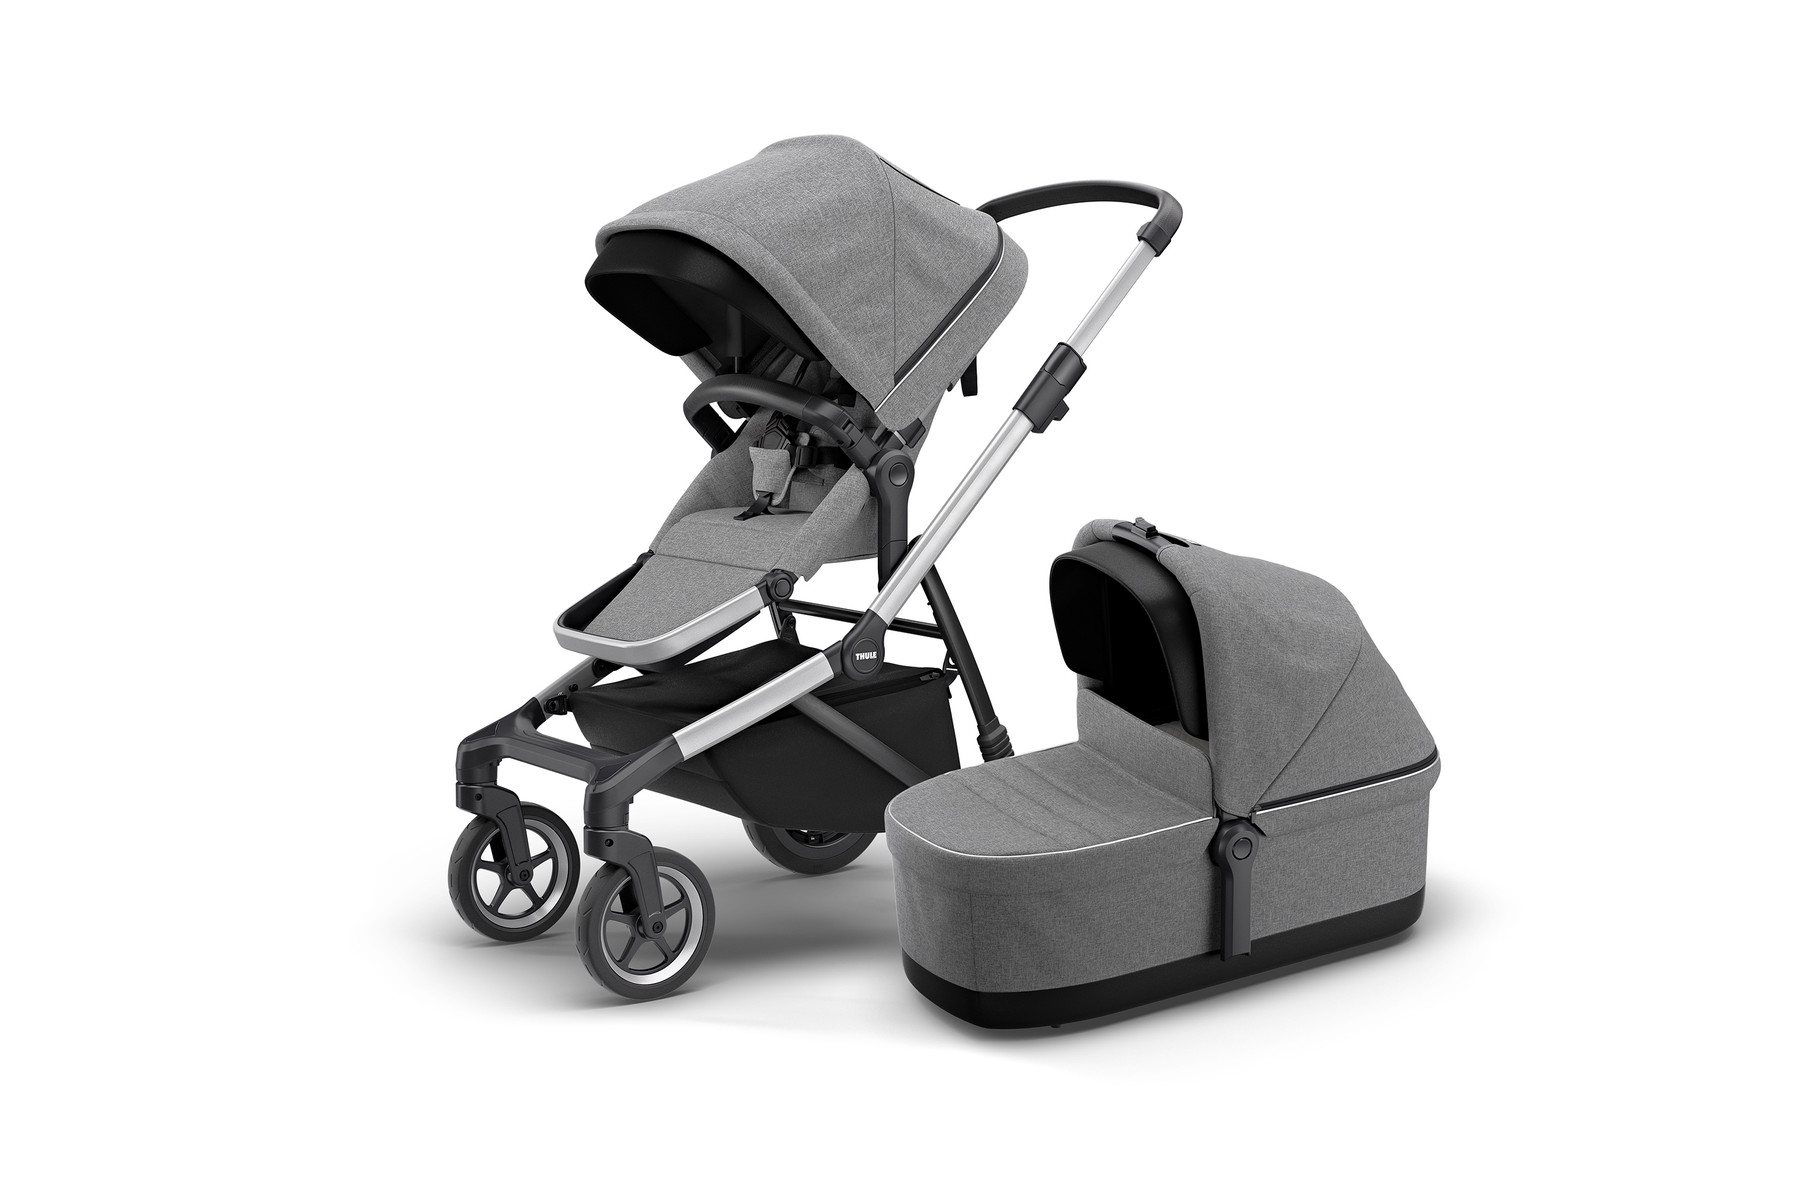 Kinderwagen Tweeling Maxi Cosi Thule Sleek Thule Sleek Bassinet